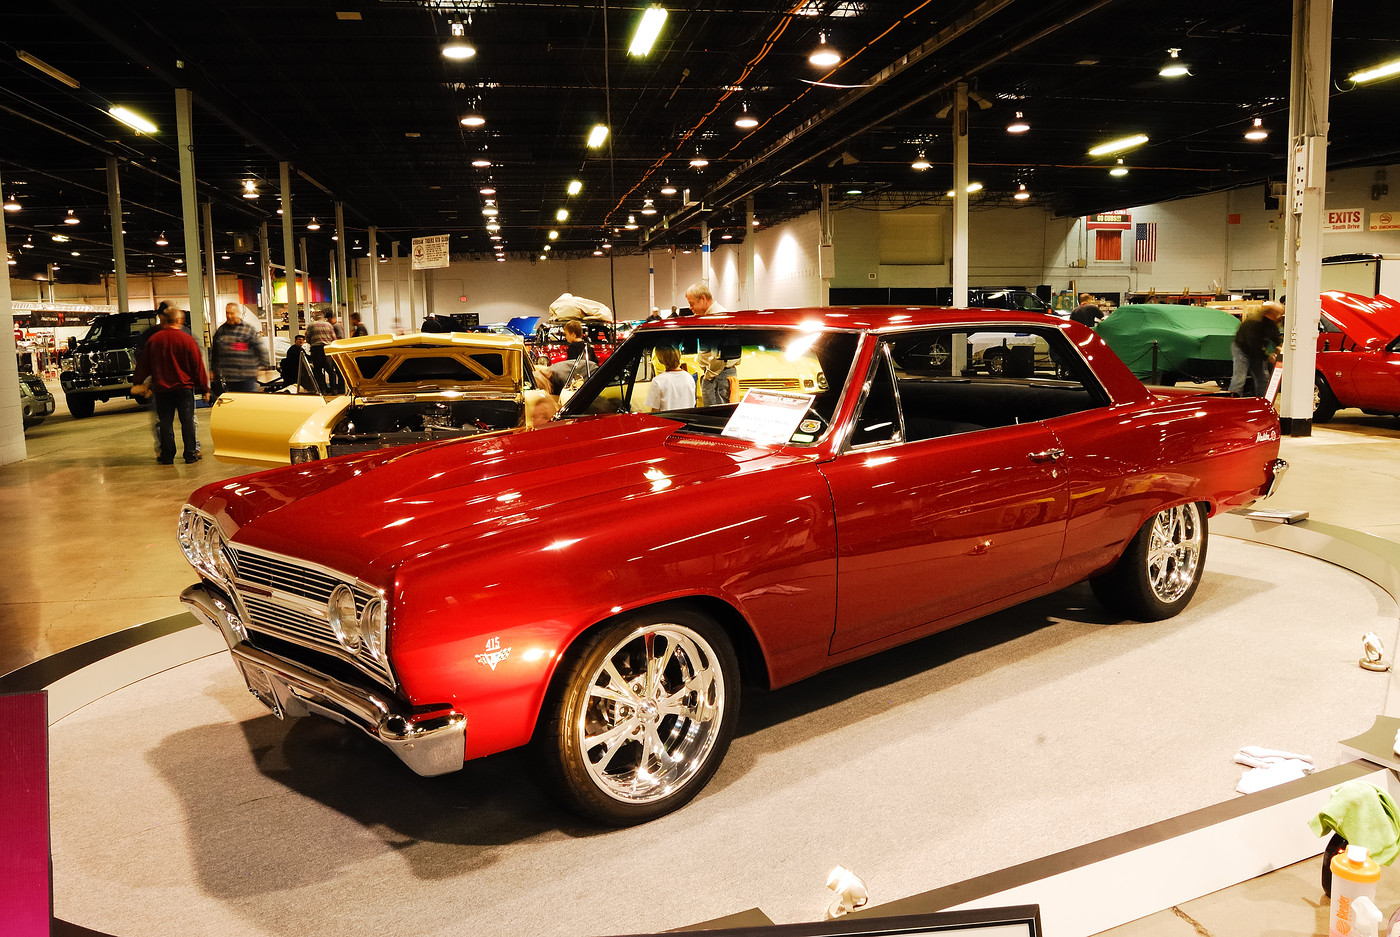 Custom Chevy Malibu at the 2010 Muscle Car and Corvette Show